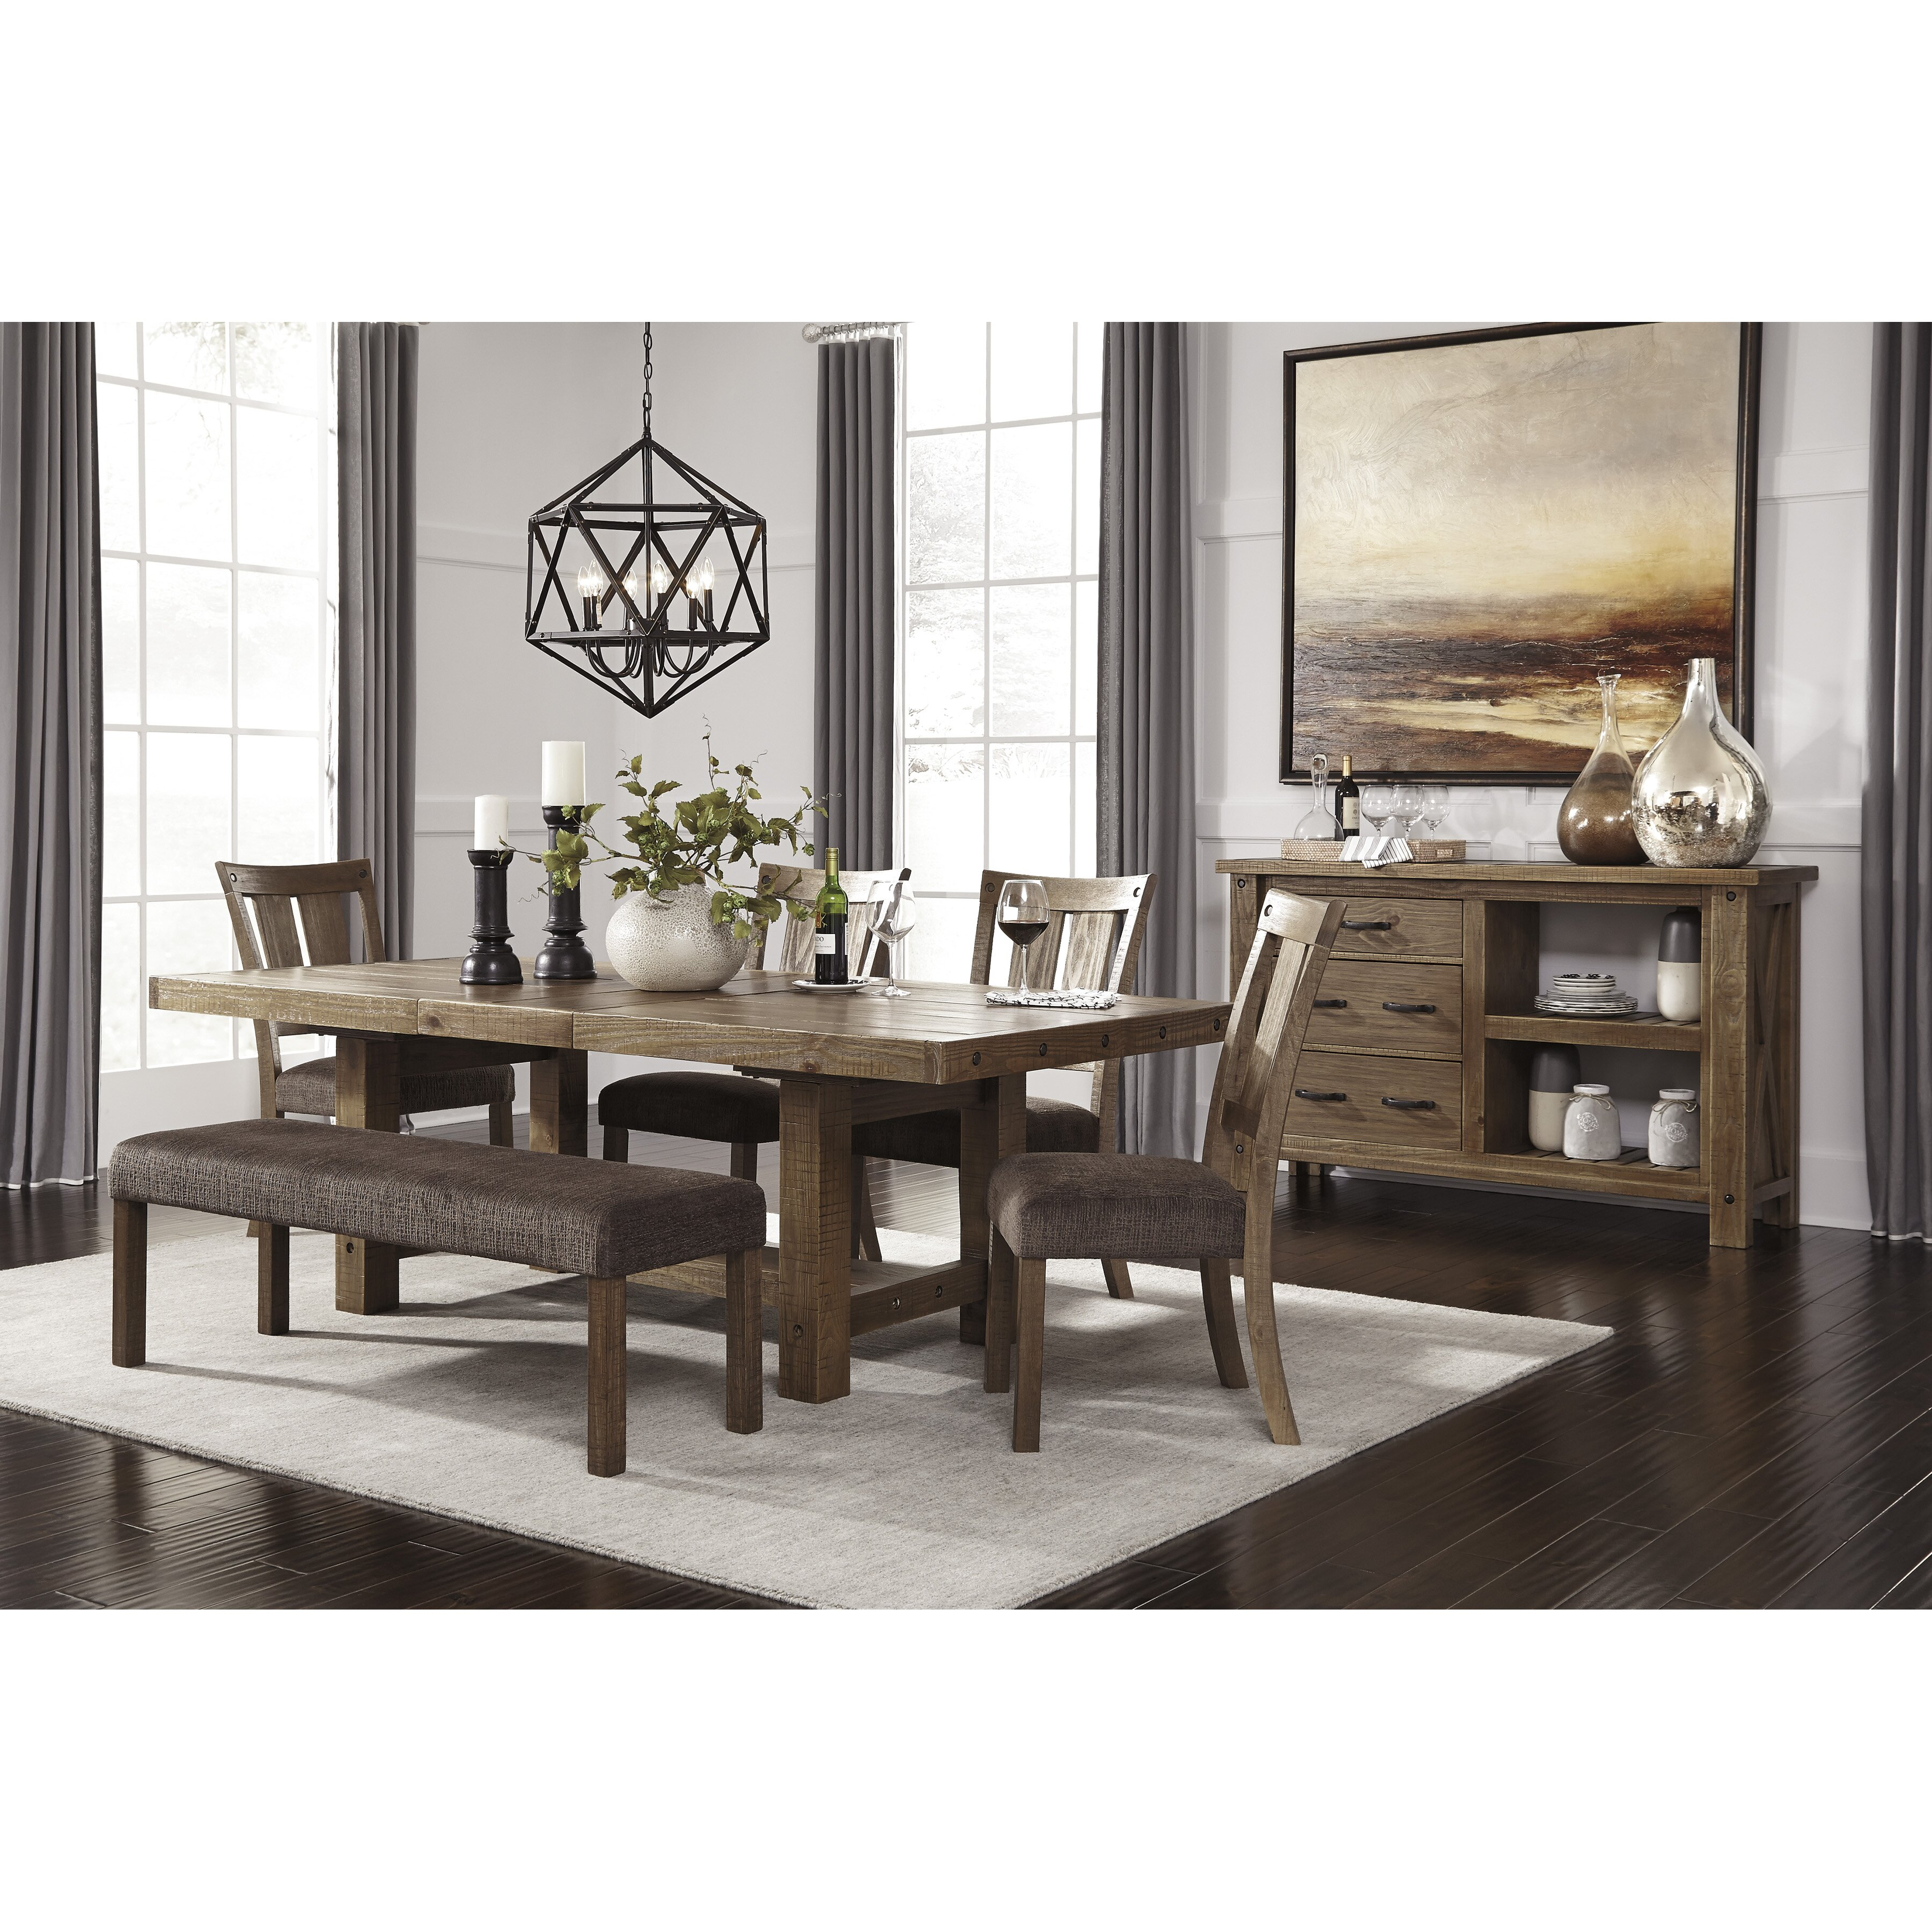 20 Irresistible 72 inch Wooden Round Dining Tables | Home ...